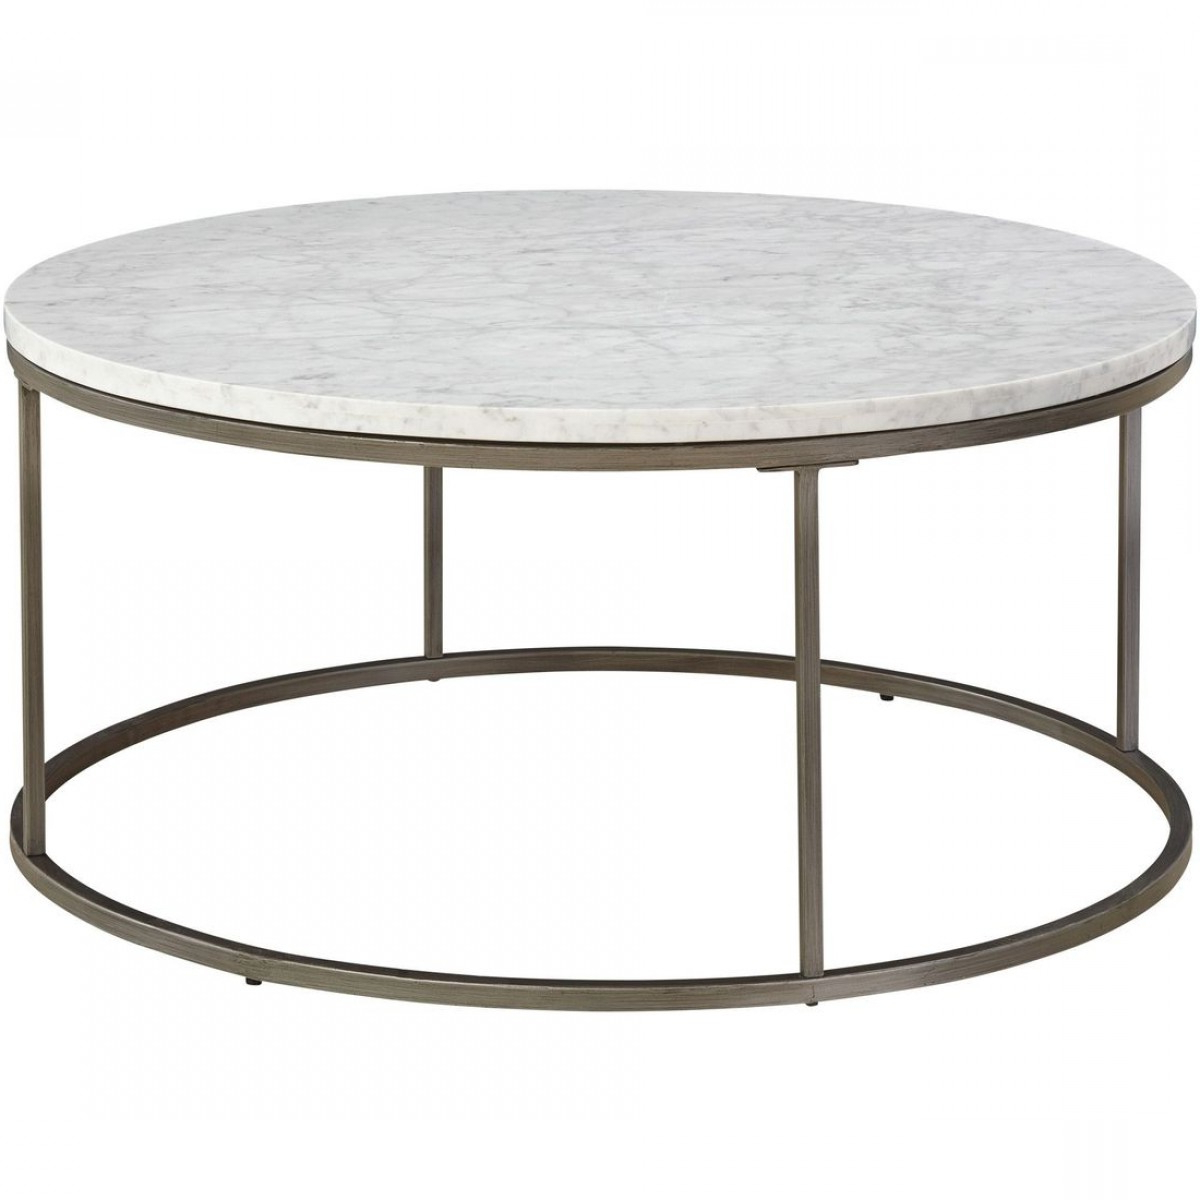 Casana Alana Round Coffee Table With White Marble Top With Best And Newest Parker Oval Marble Coffee Tables (View 19 of 20)